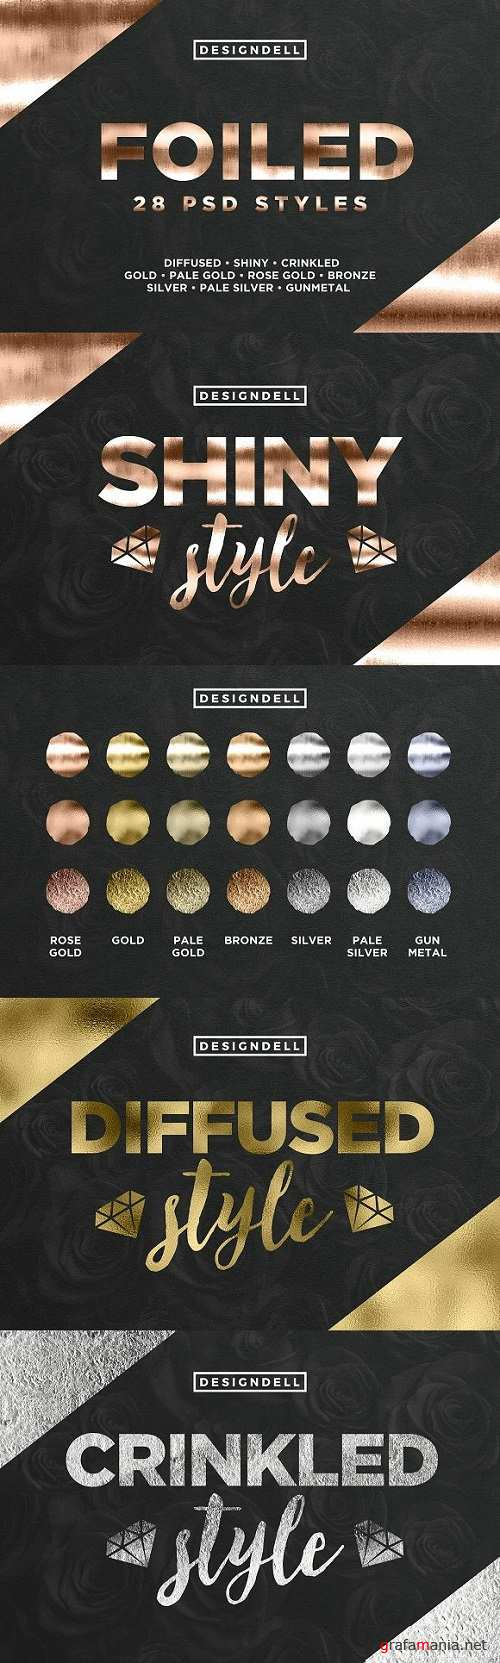 Foiled Photoshop Styles 1848729